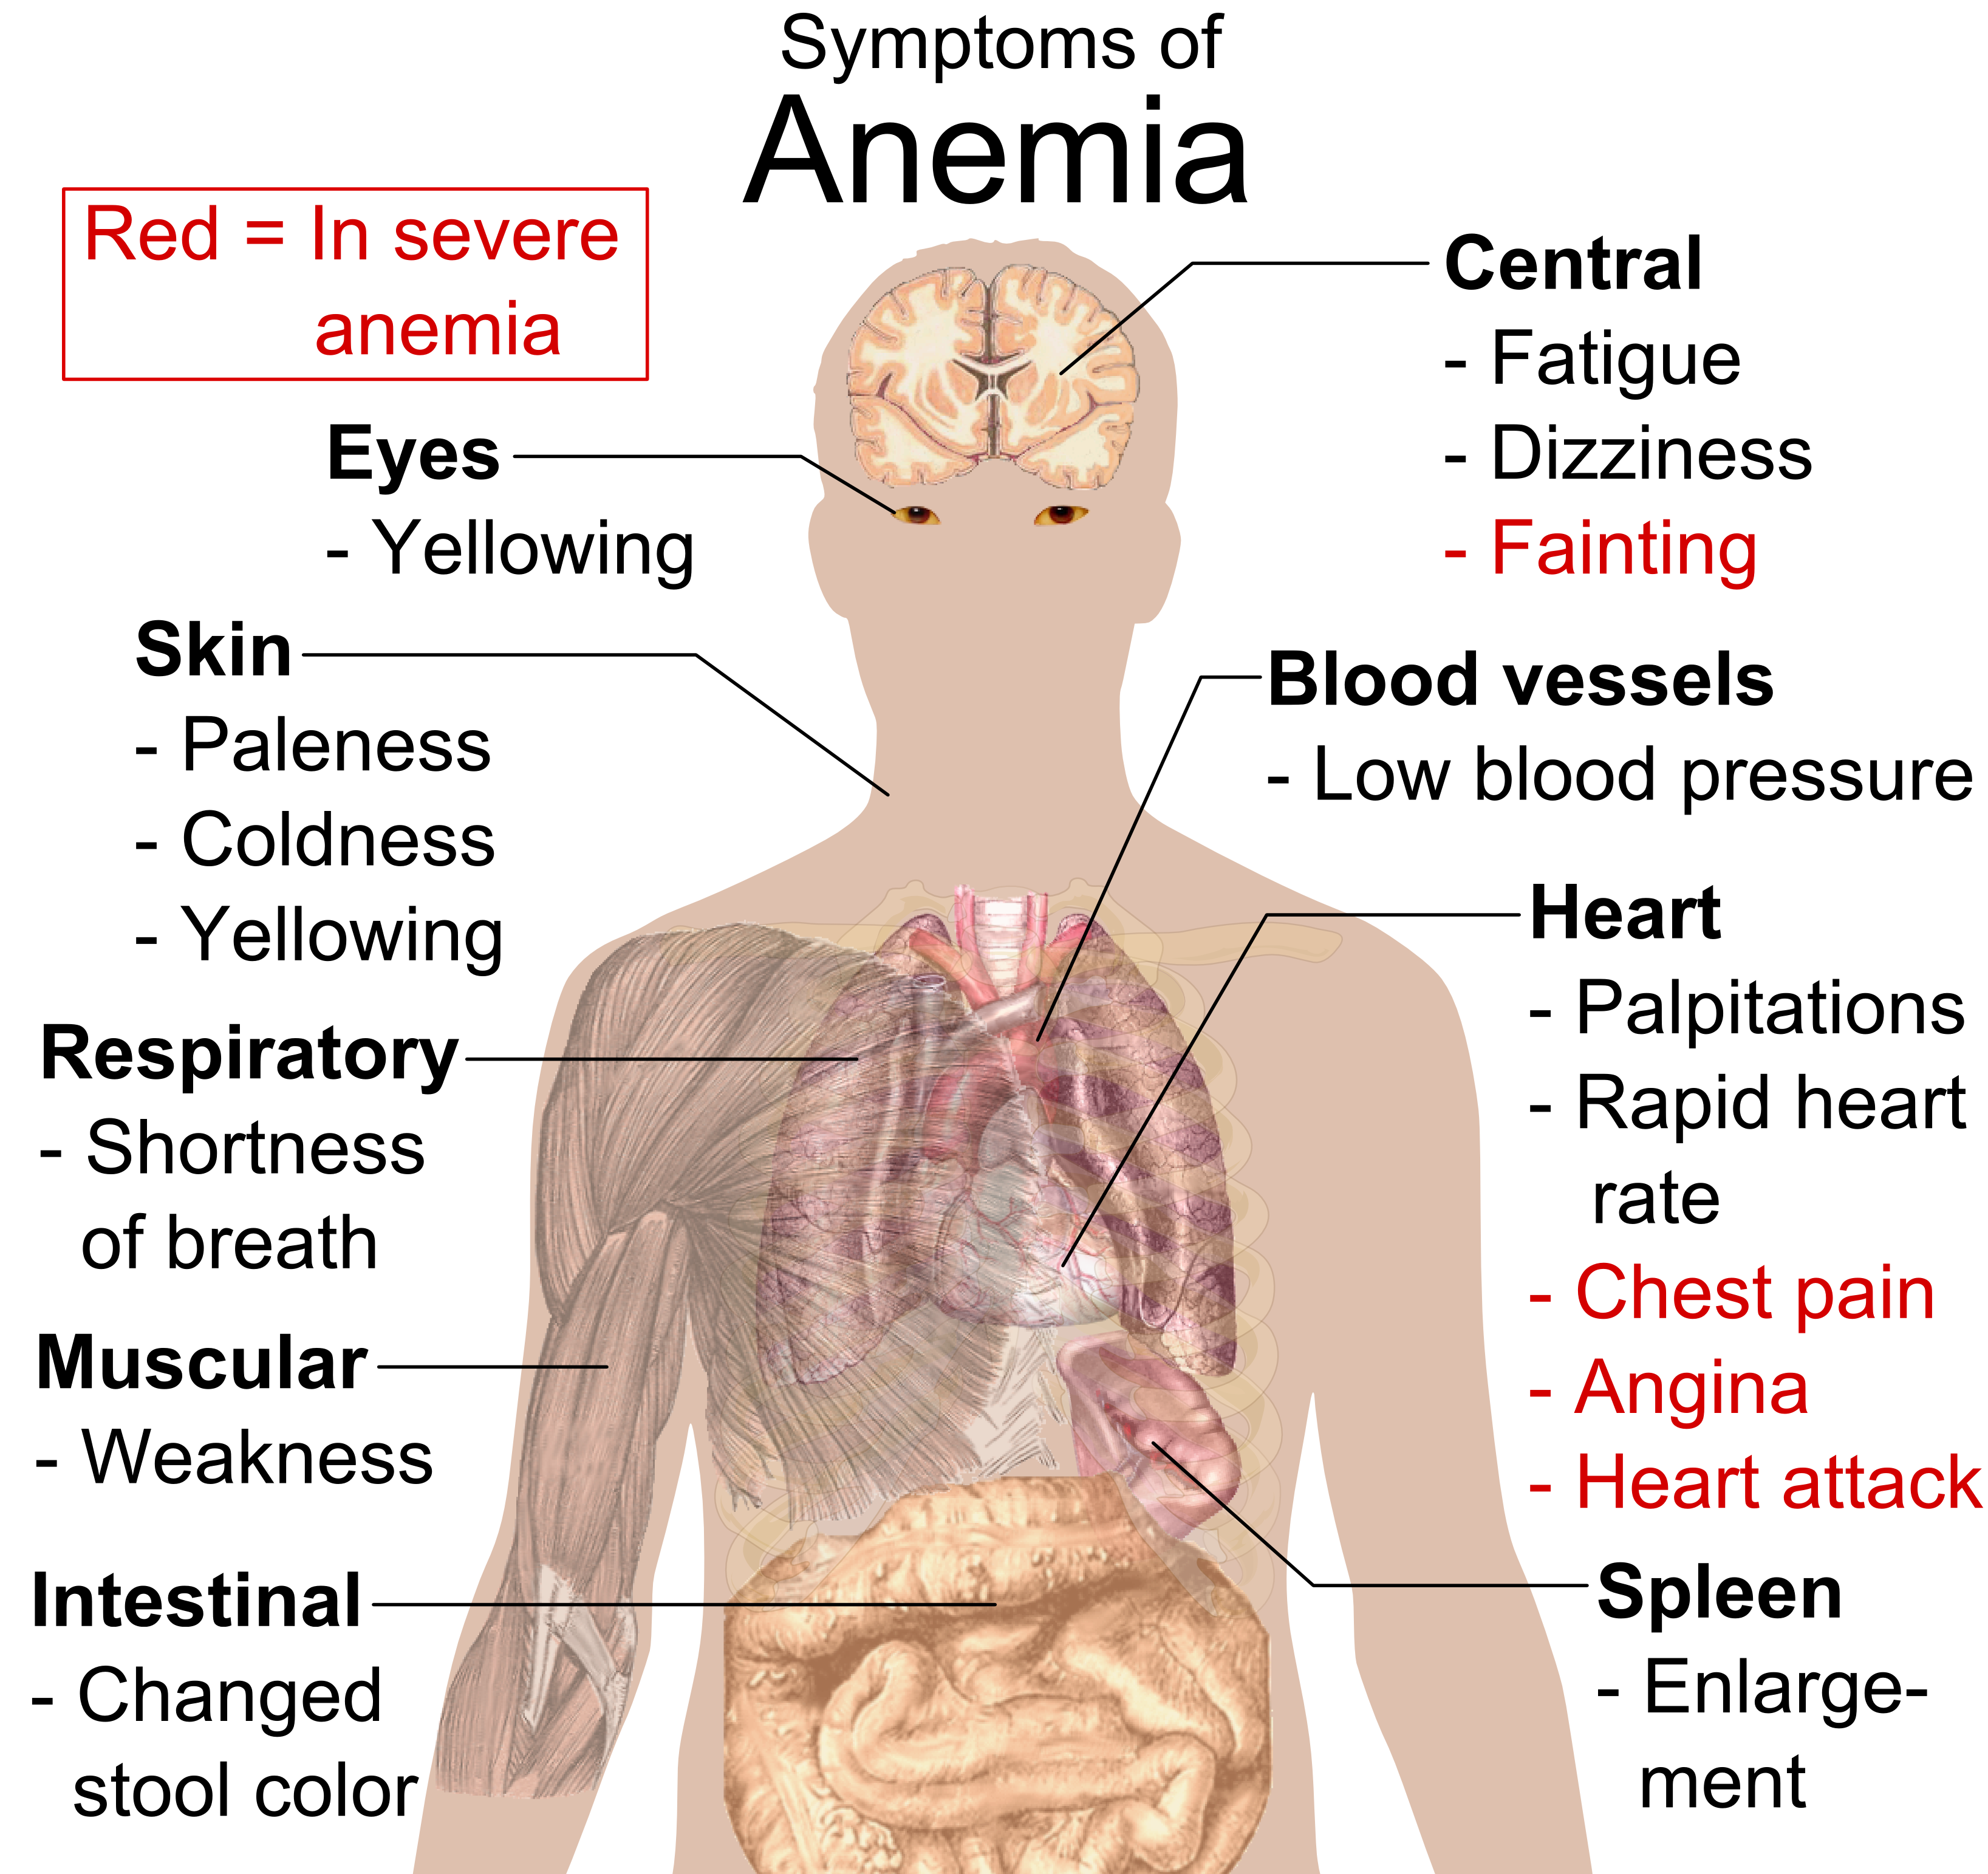 File:Symptoms of anemia png - Wikimedia Commons